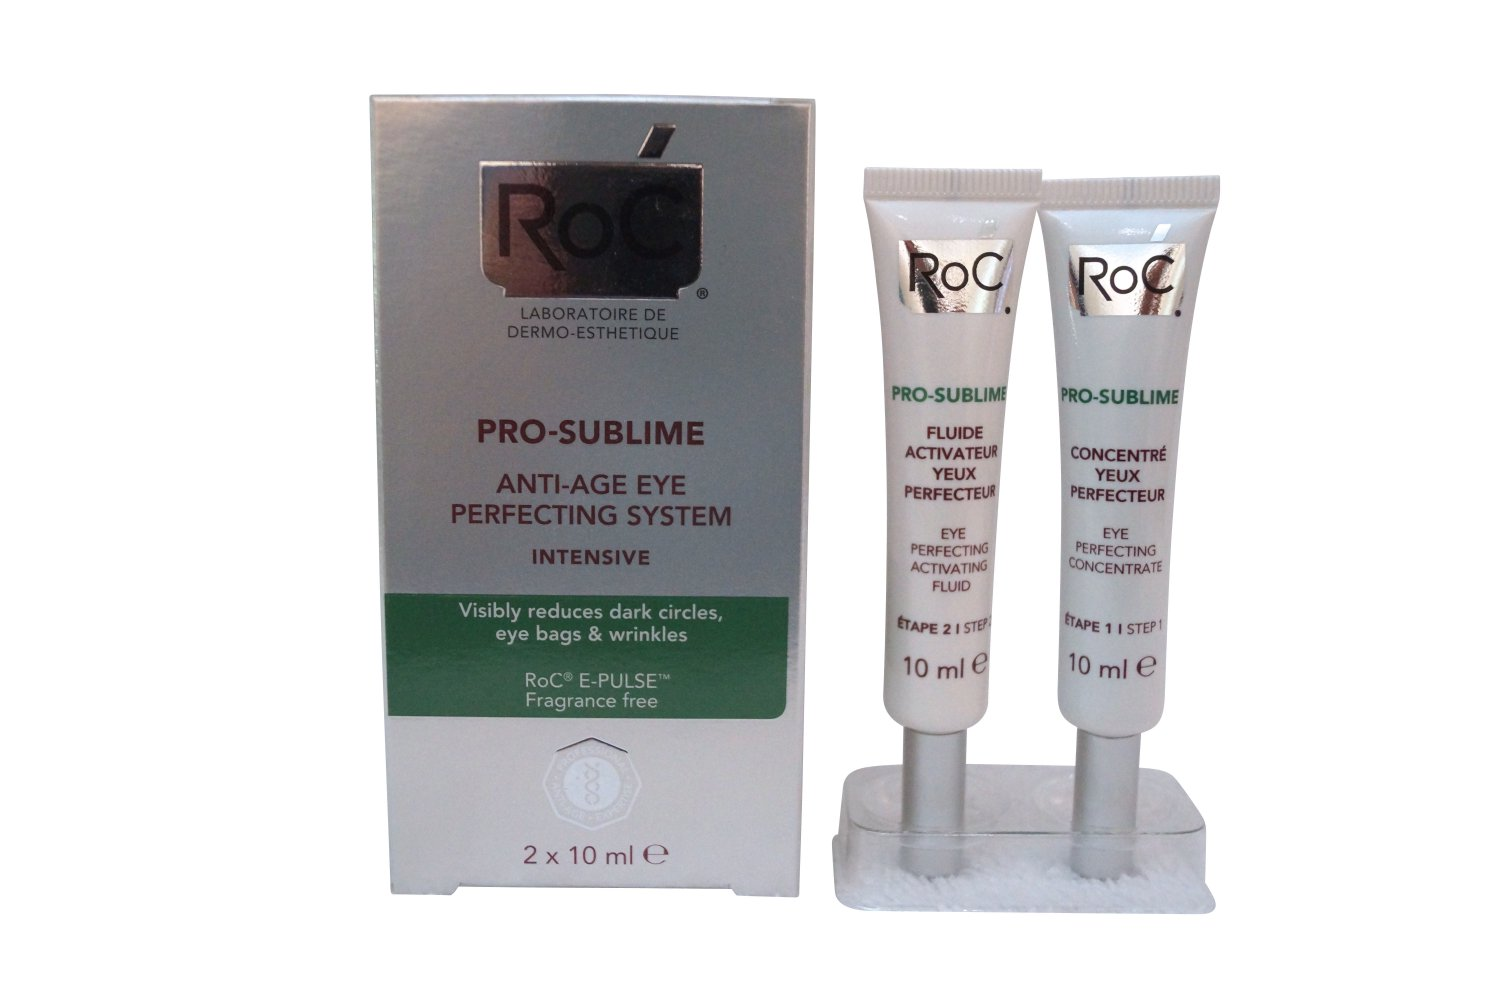 RoC Pro-Sublime Anti-Aging Eye Perfecting System Intensive 2 X 10 ml